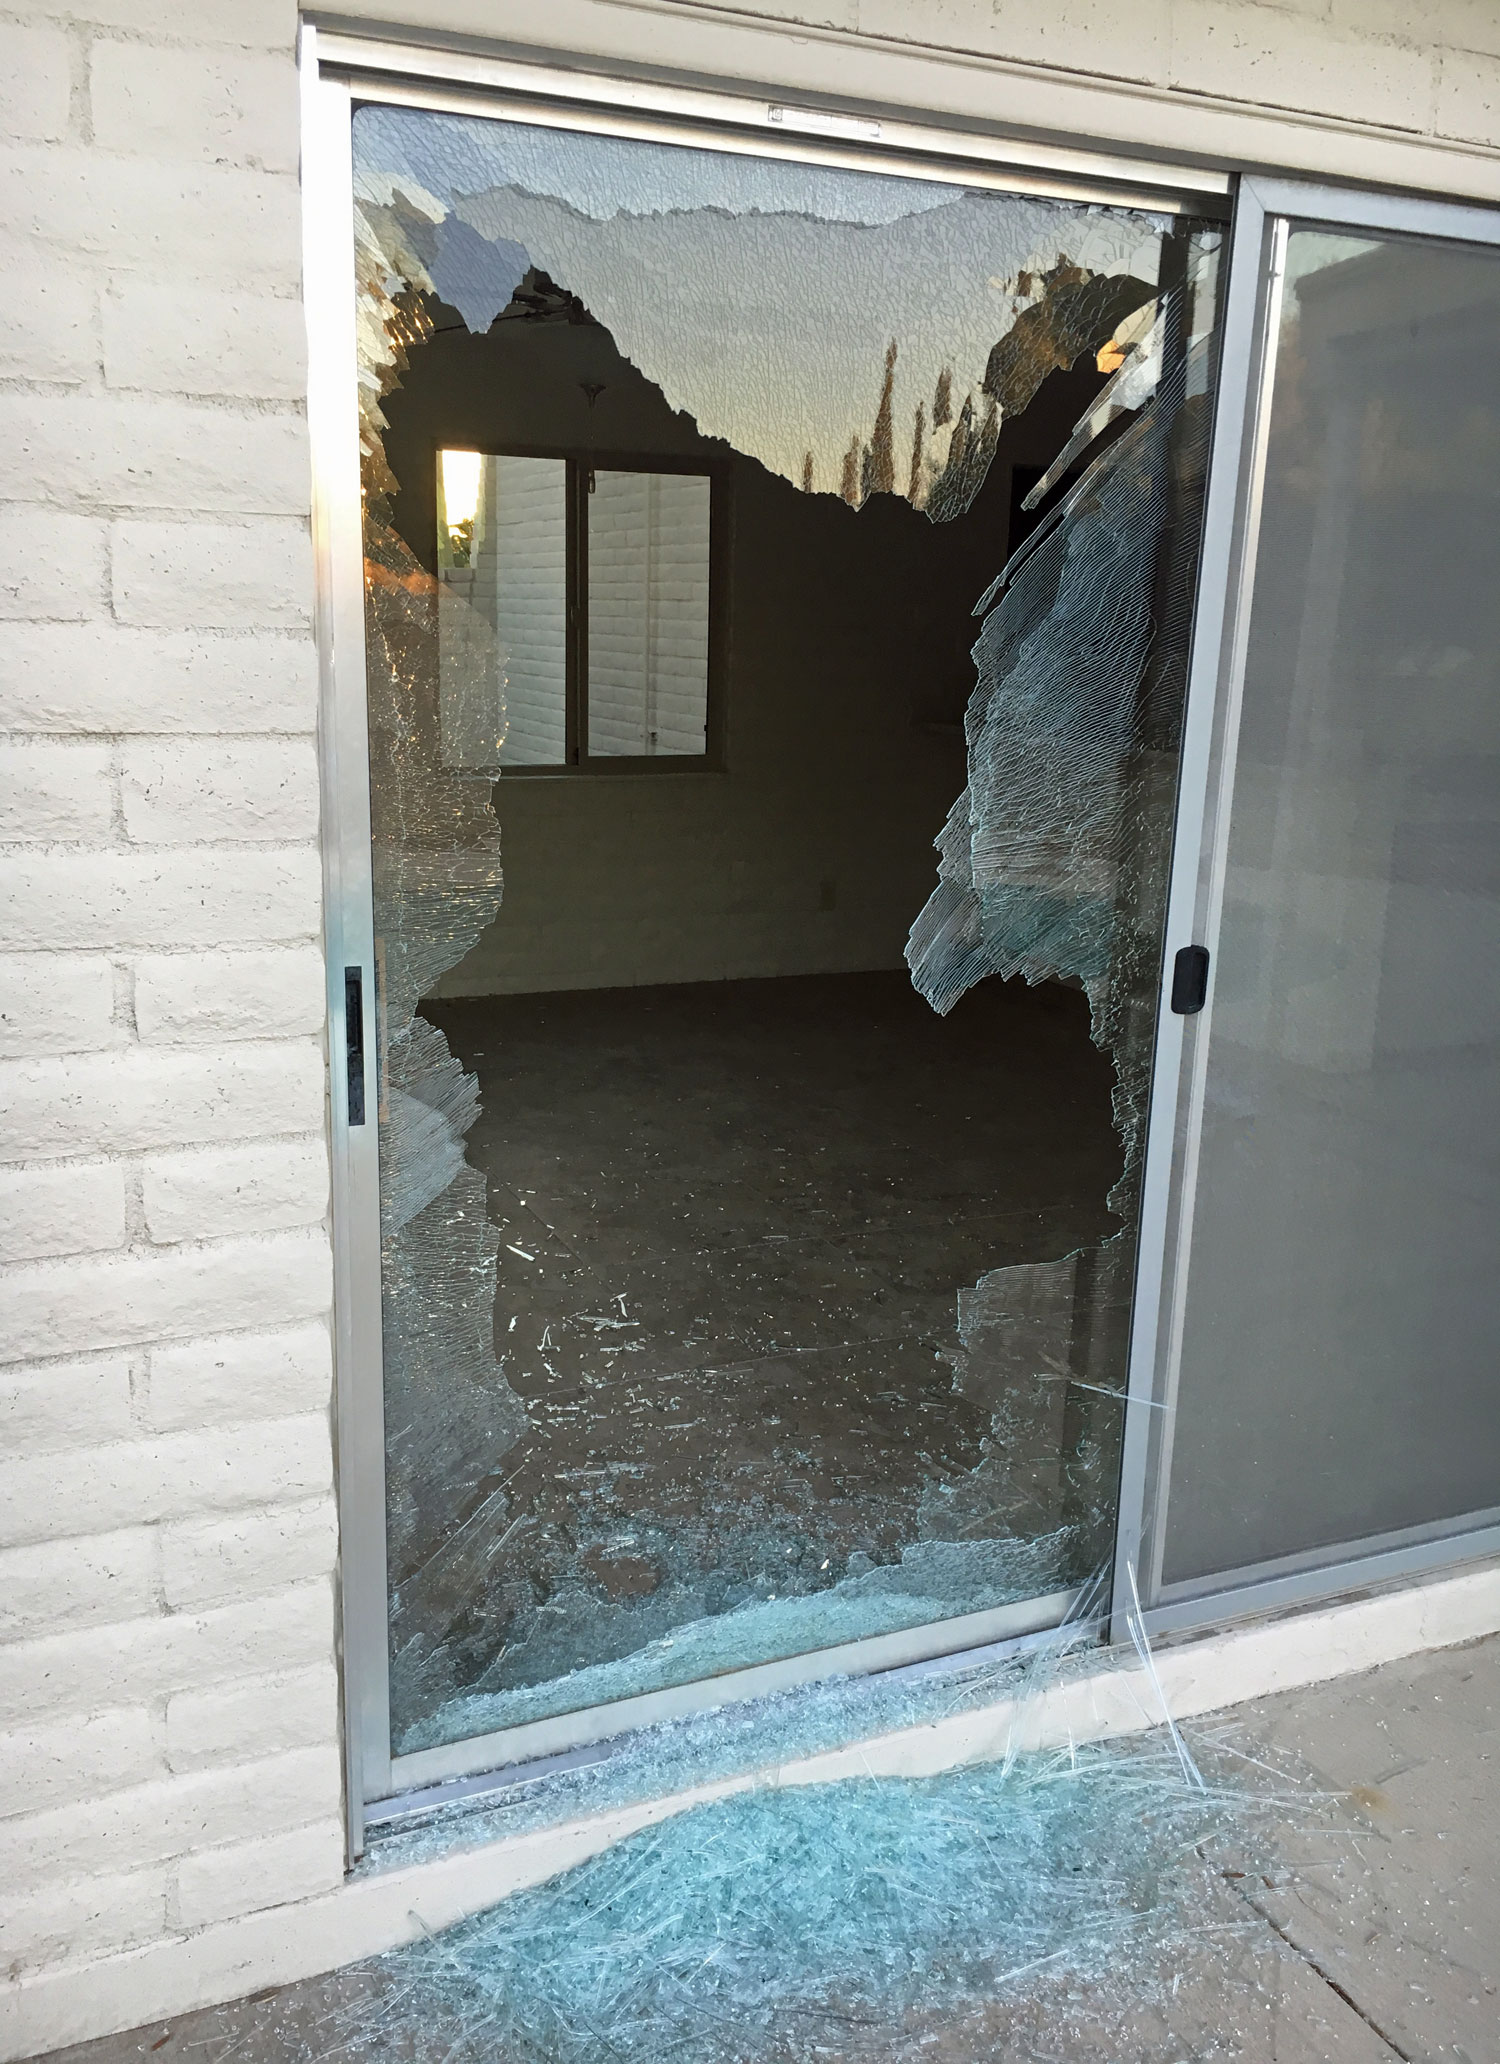 Sliding door glass broke